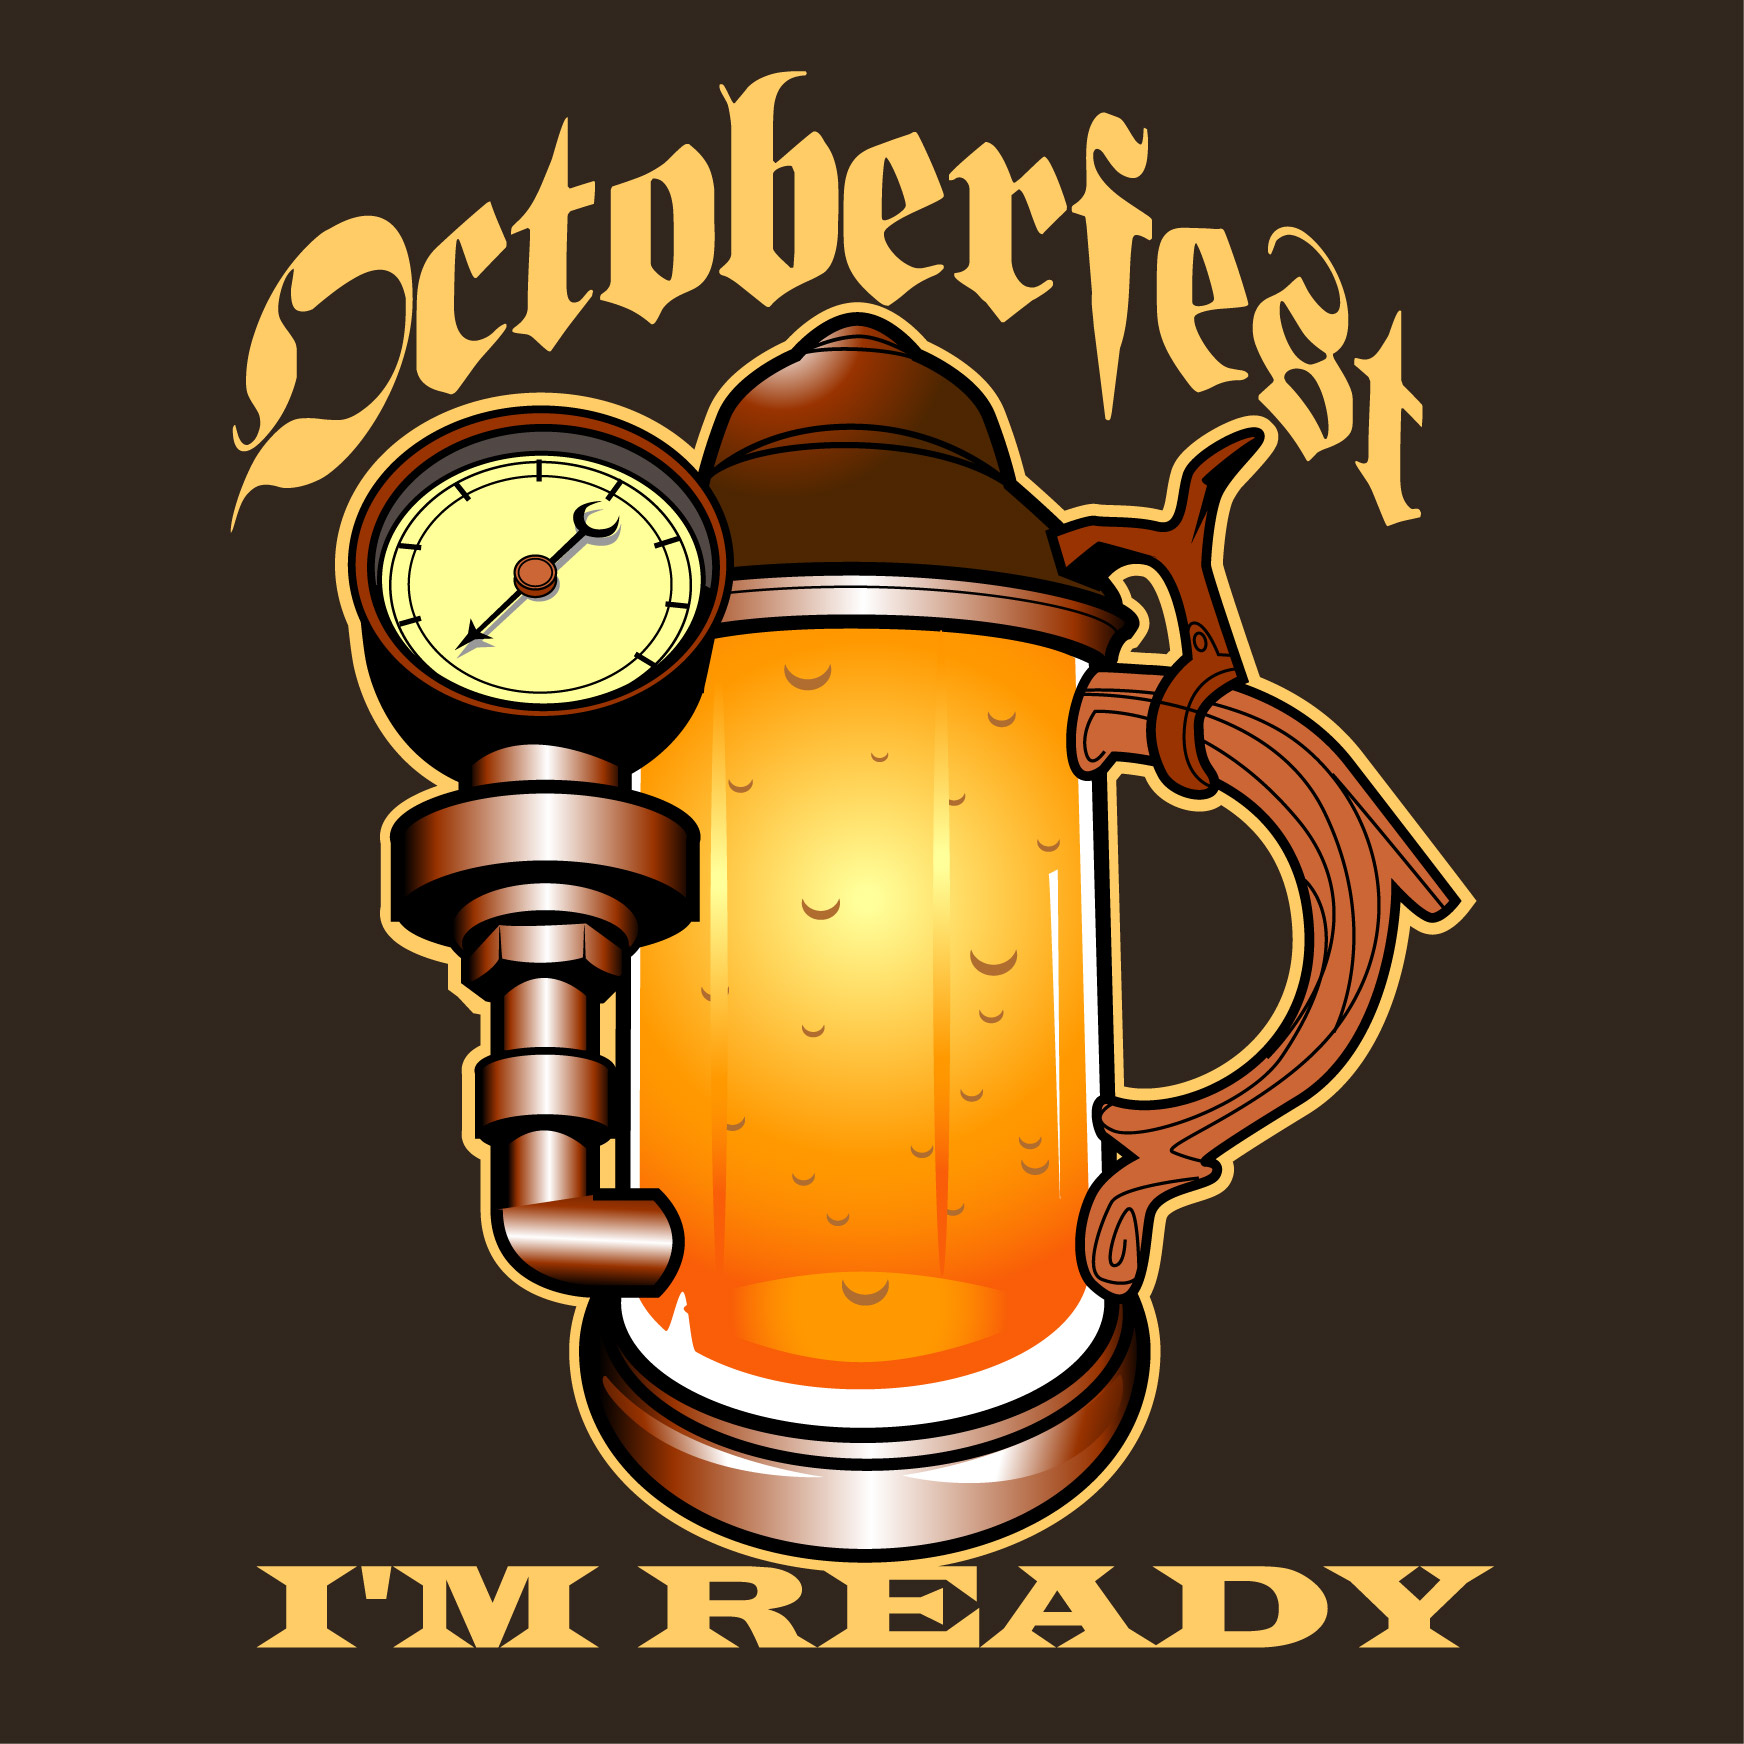 Ready for Octoberfest ver. 2